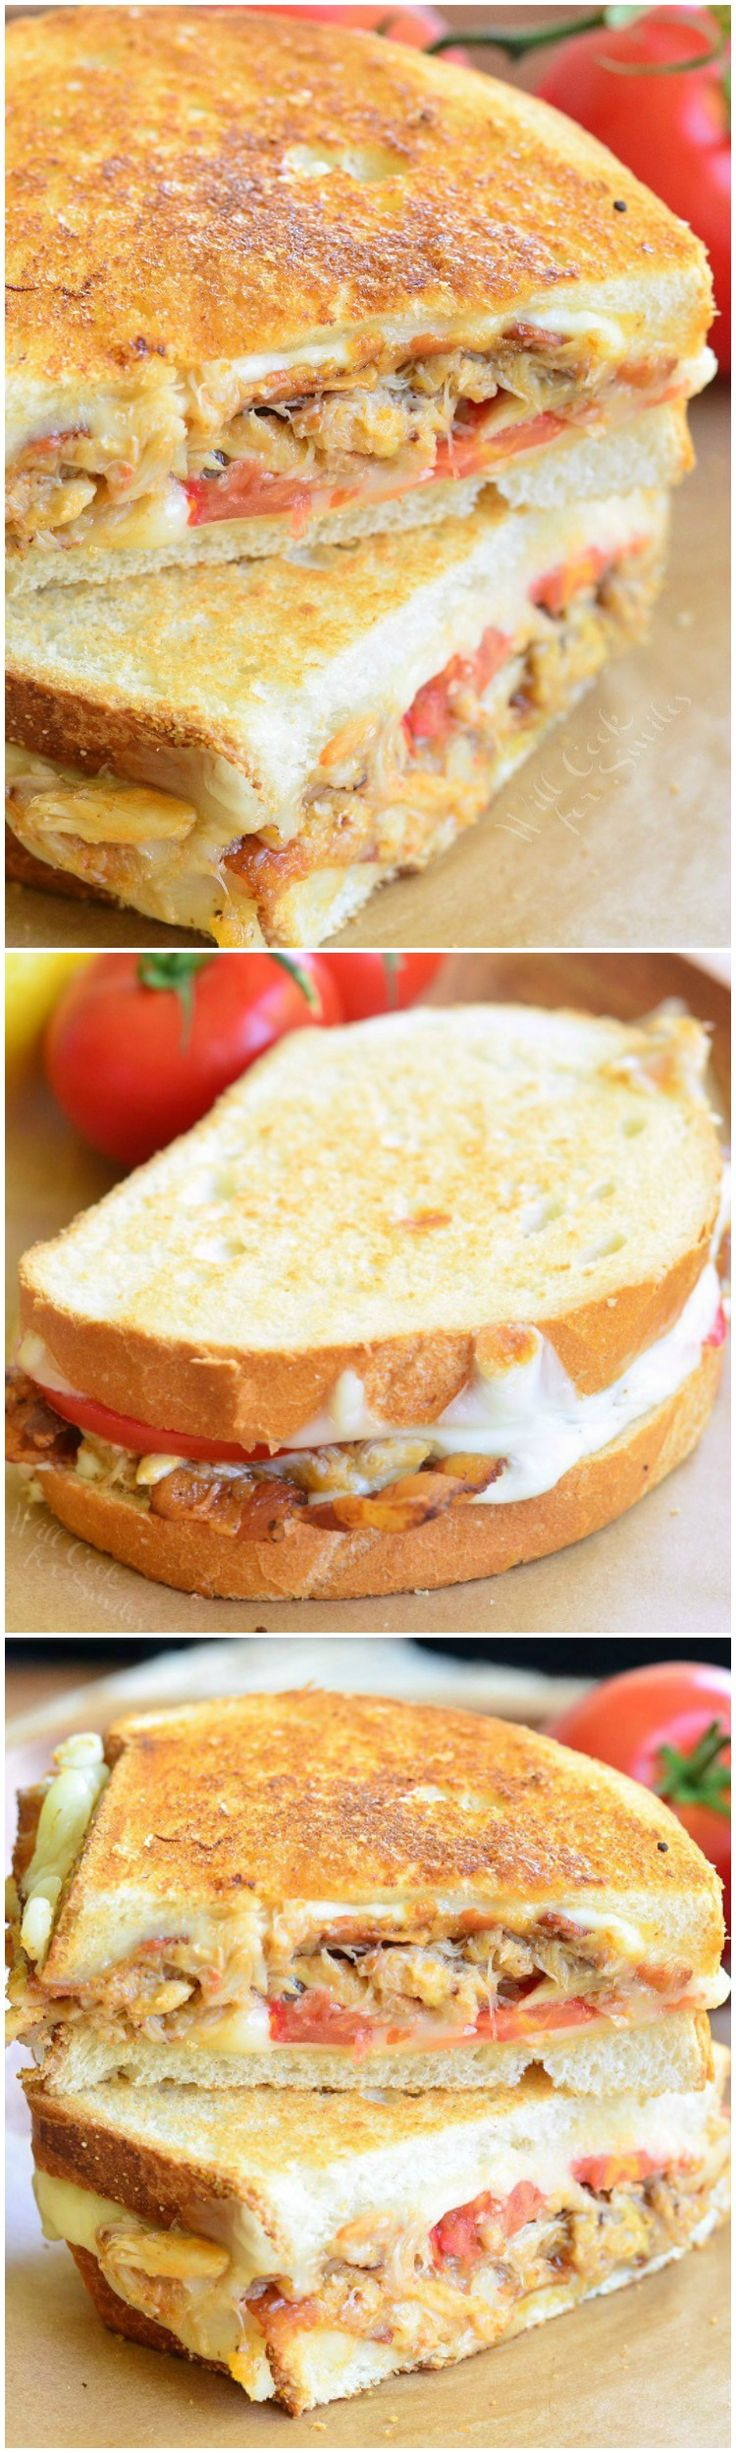 25+ best ideas about Crab Sandwich on Pinterest | Crab ...